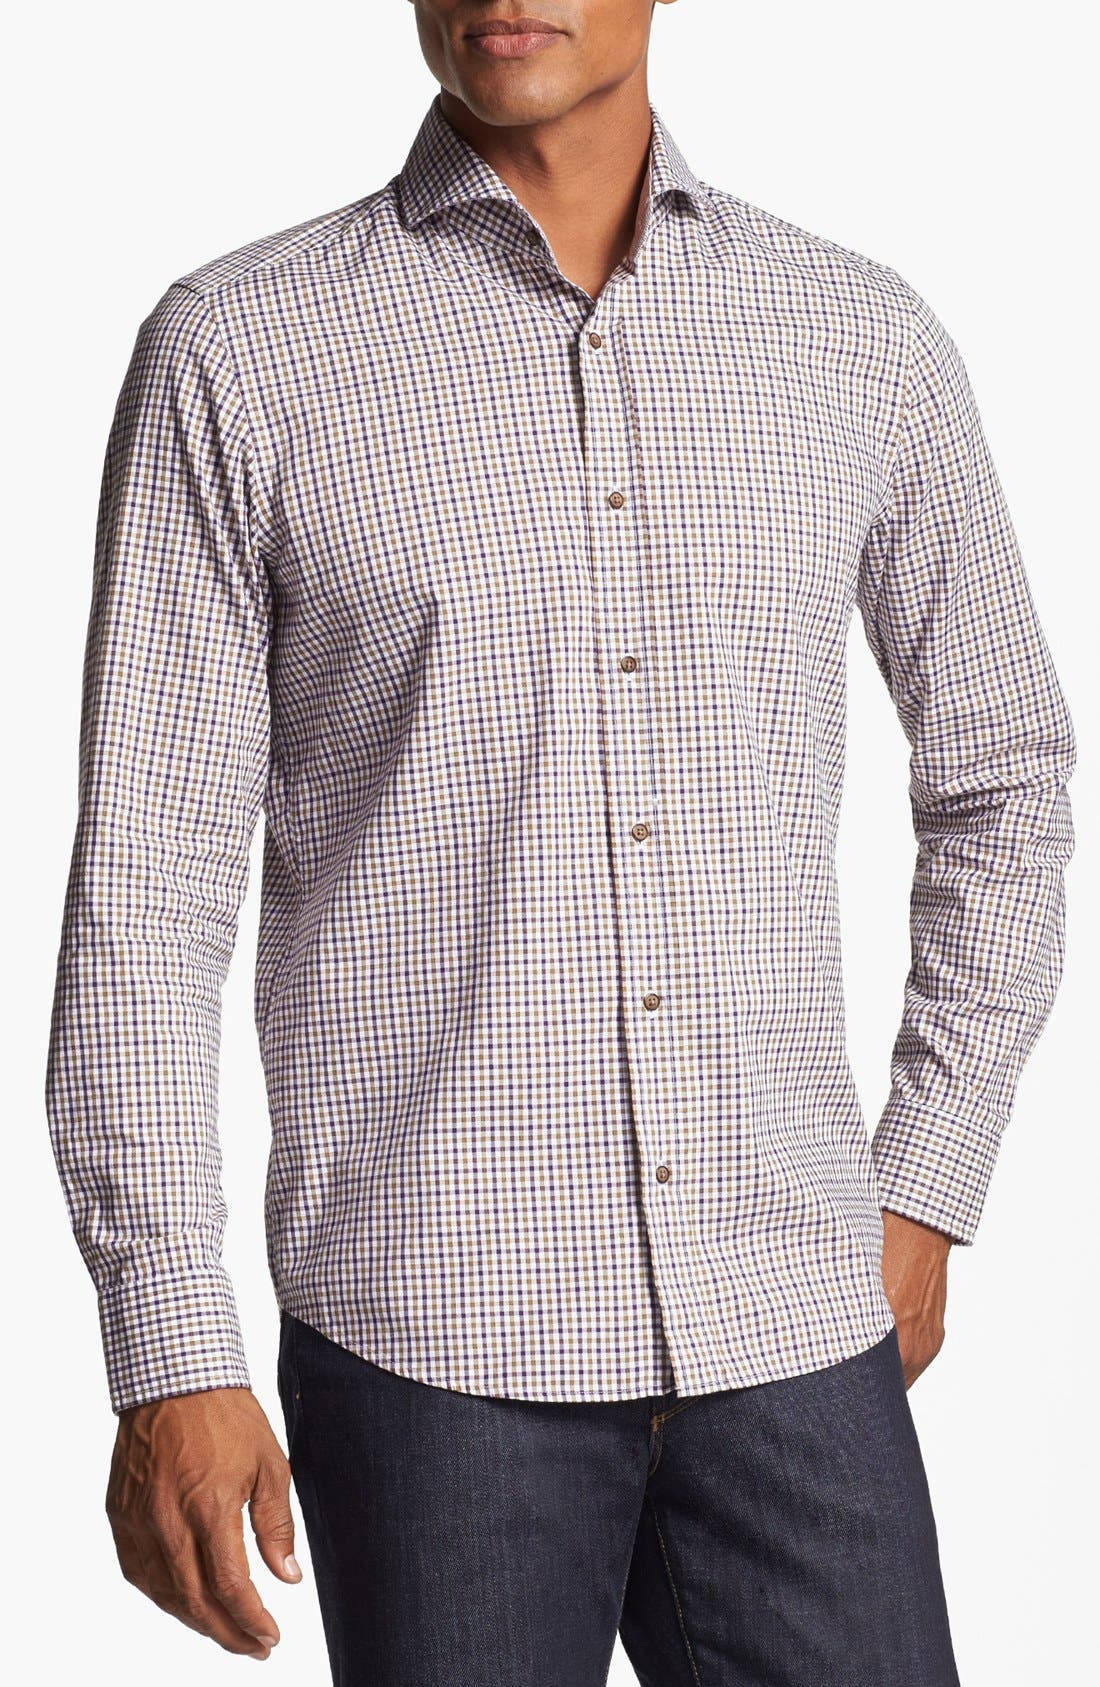 Main Image - BOSS HUGO BOSS 'Sean' Regular Fit Sport Shirt